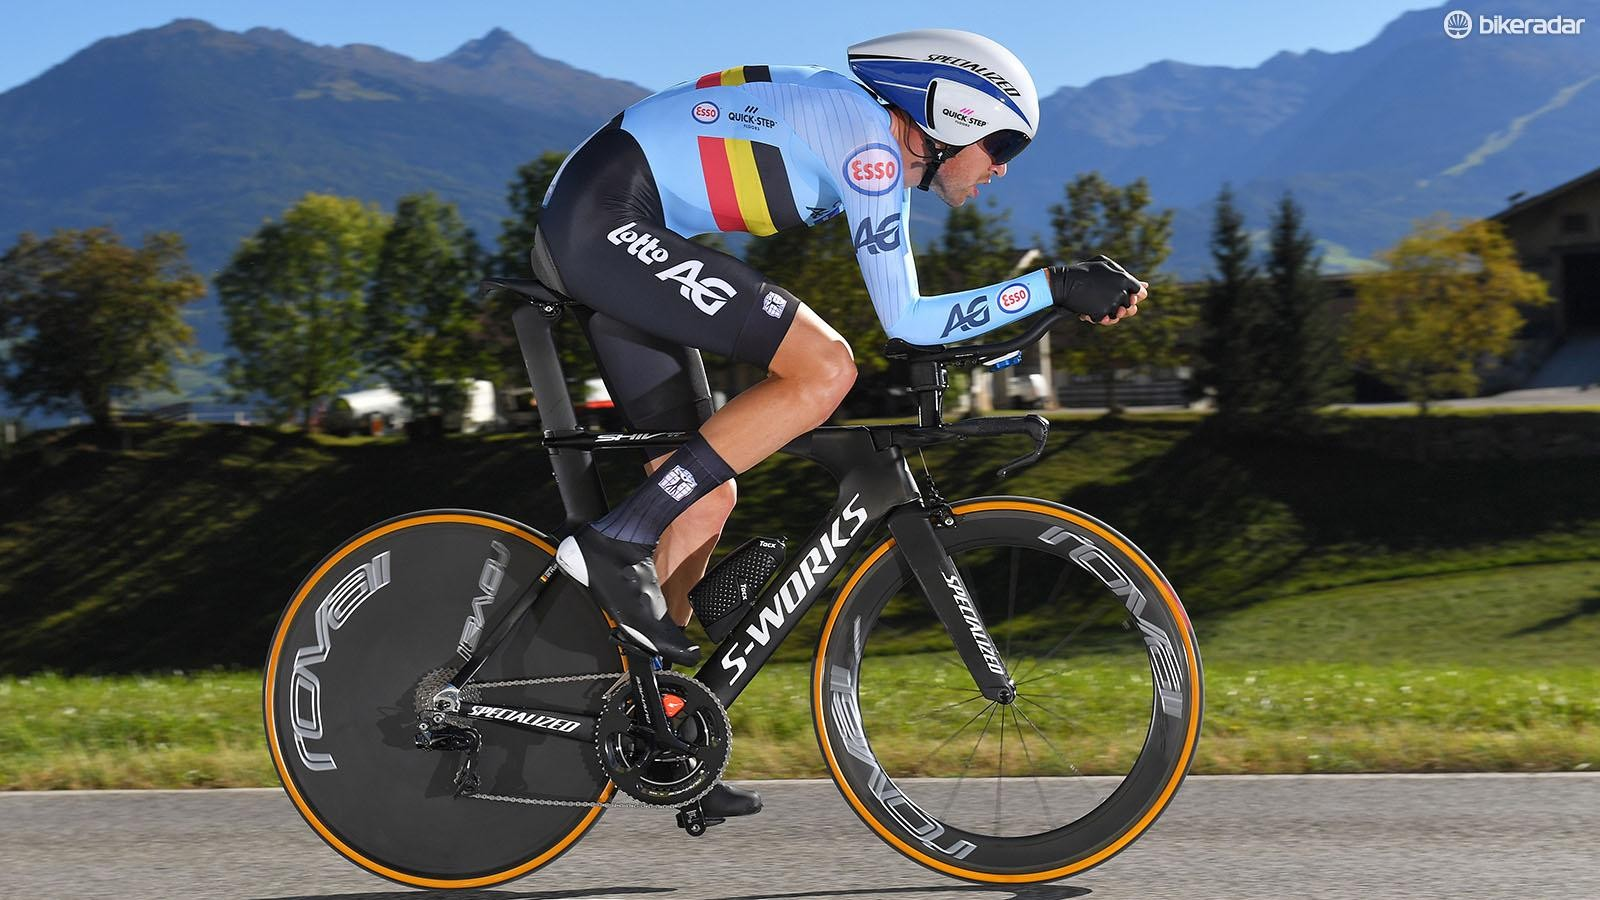 Laurens De Plus of Belgium wore the new speed suit with an external seat pad